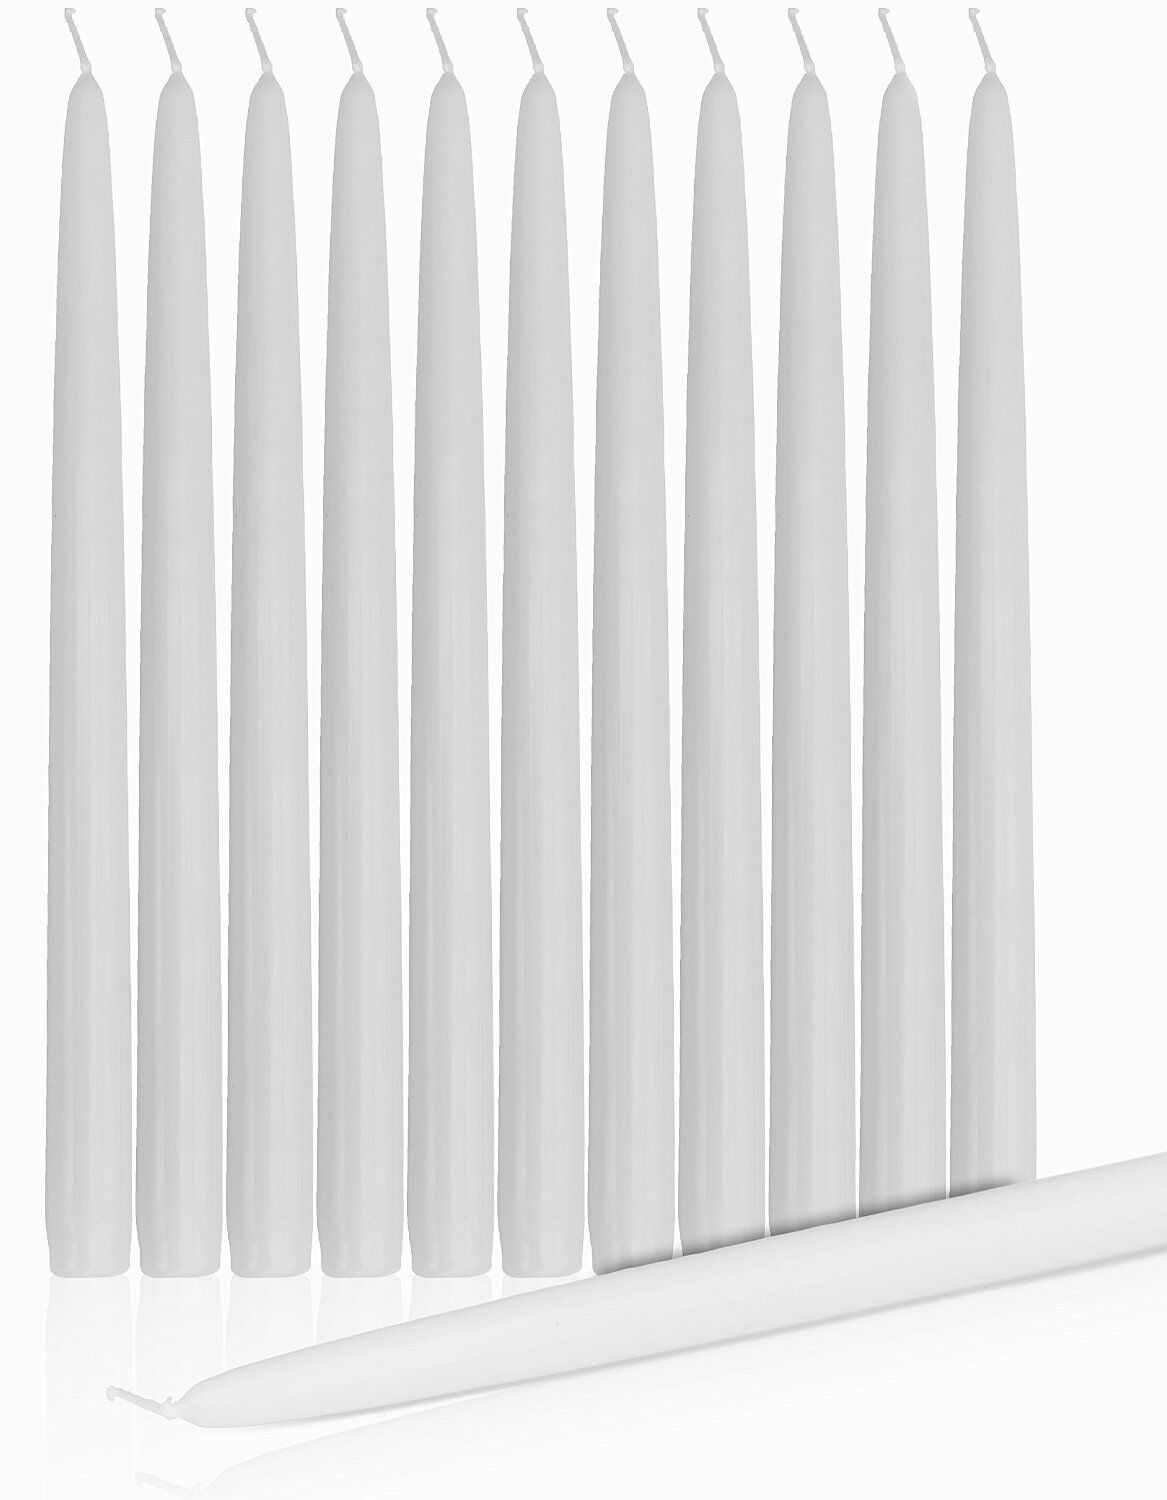 10 Inch white Smoke Free Dripless Taper Candle case of 100 Buy Bulk & save BIG